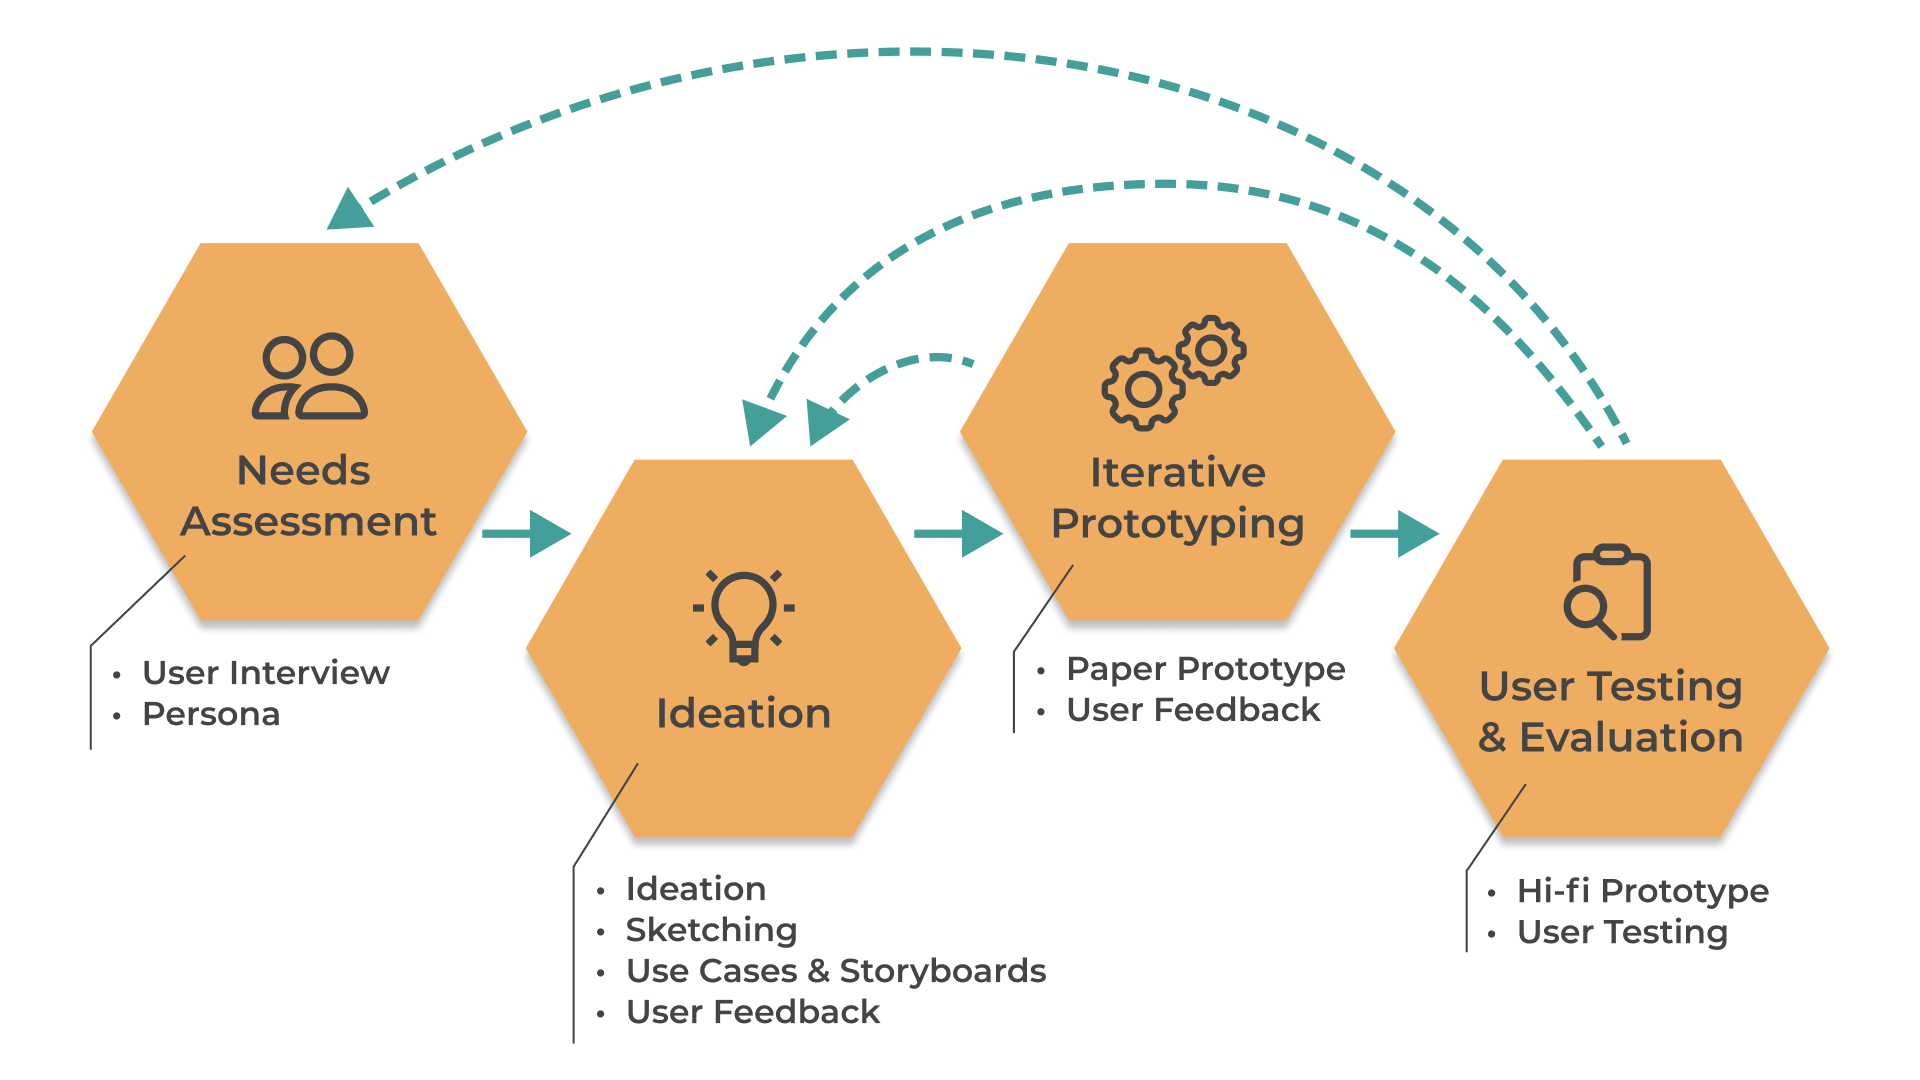 Needs Assessment, Ideation, Iterative Prototyping, User Testing & Evaluation